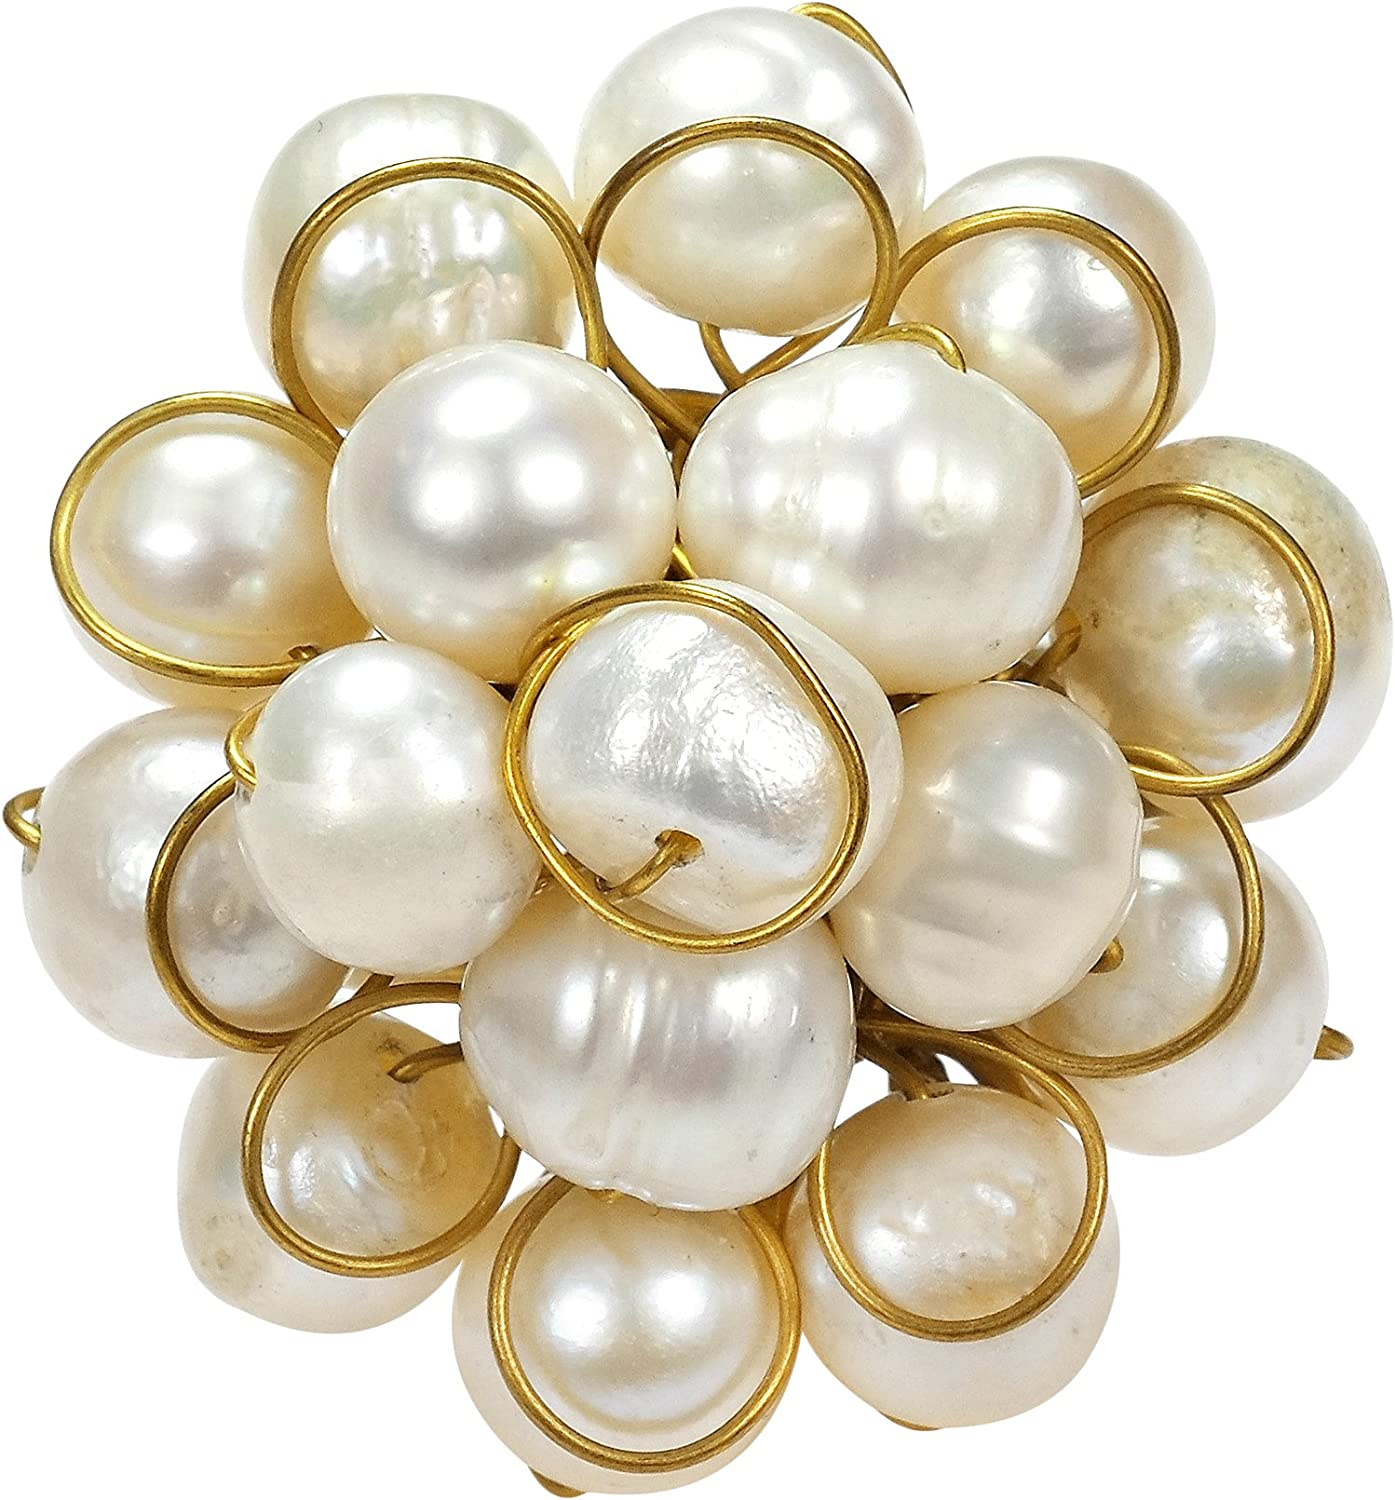 AeraVida Unique Round Front Cluster Cultured Freshwater Pearl Free Size Ring